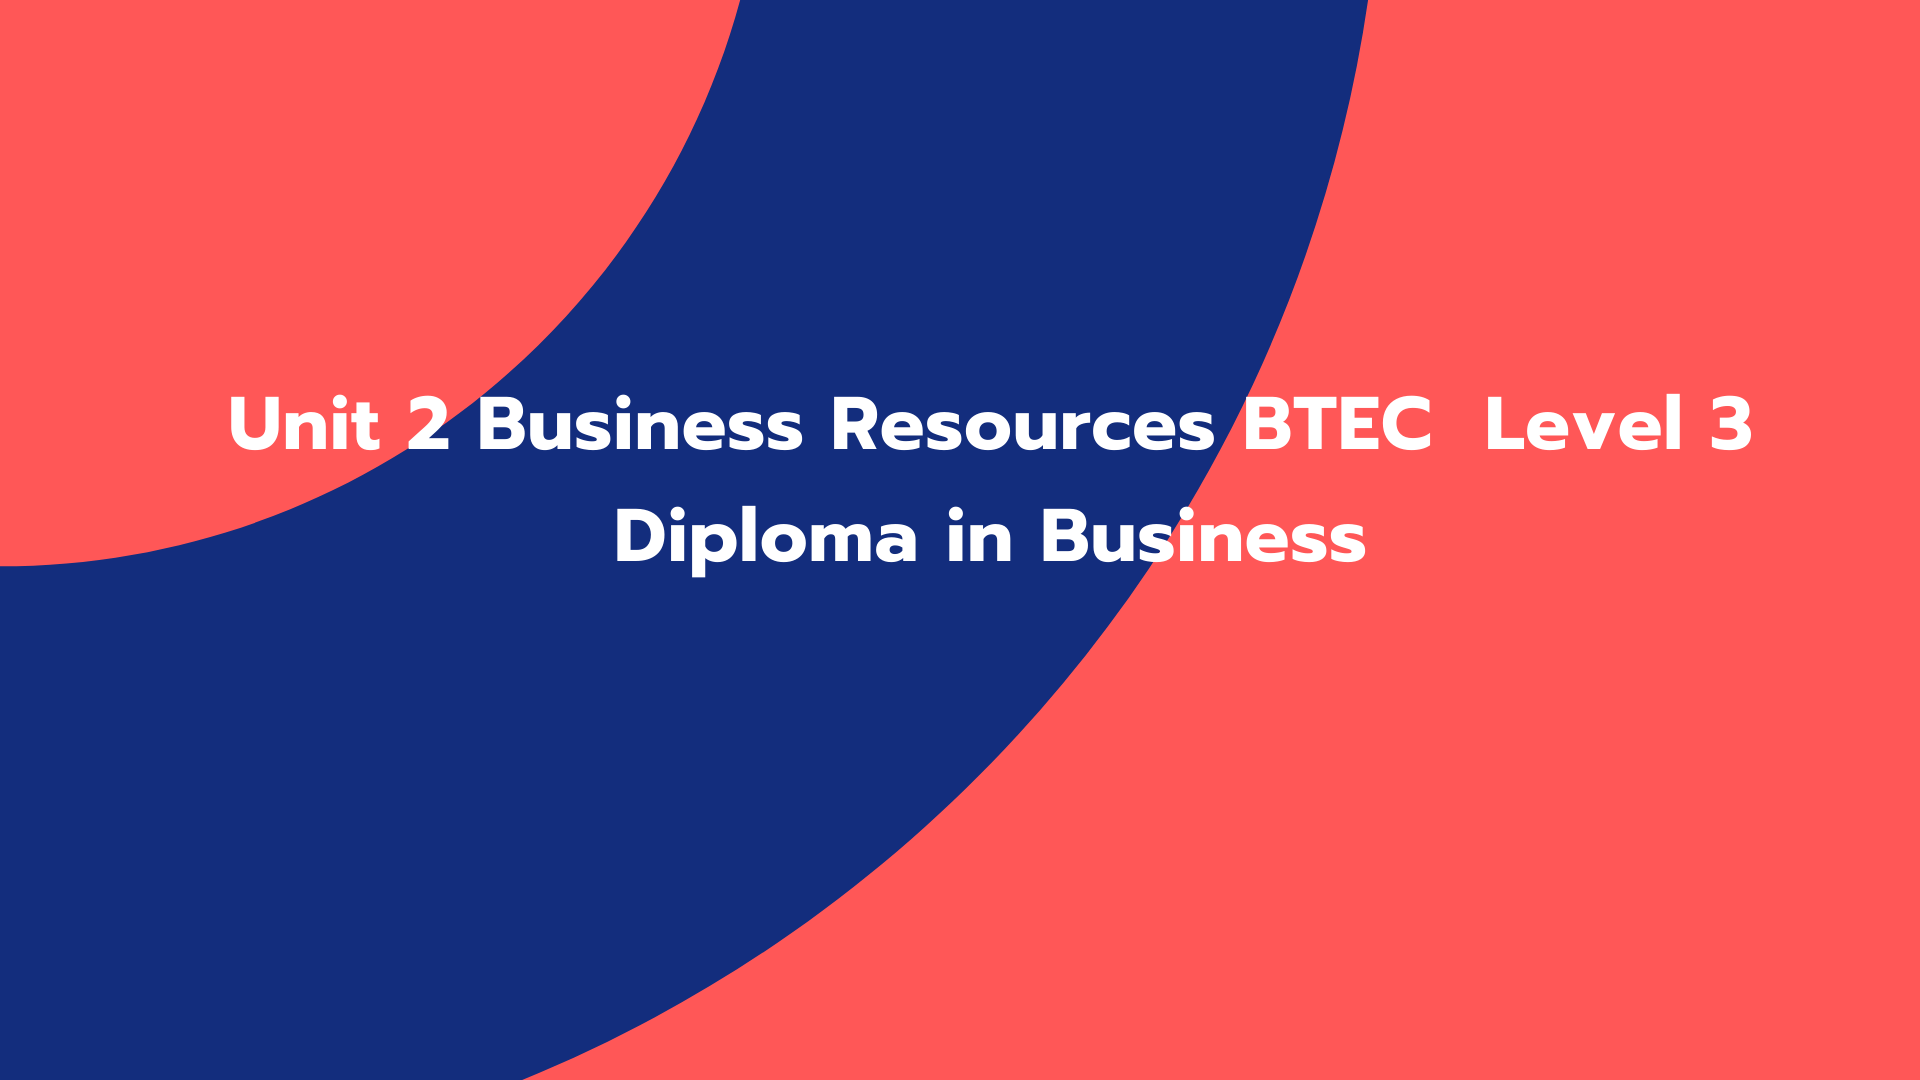 Unit 2 Business Resources BTEC Level 3 Diploma in Business